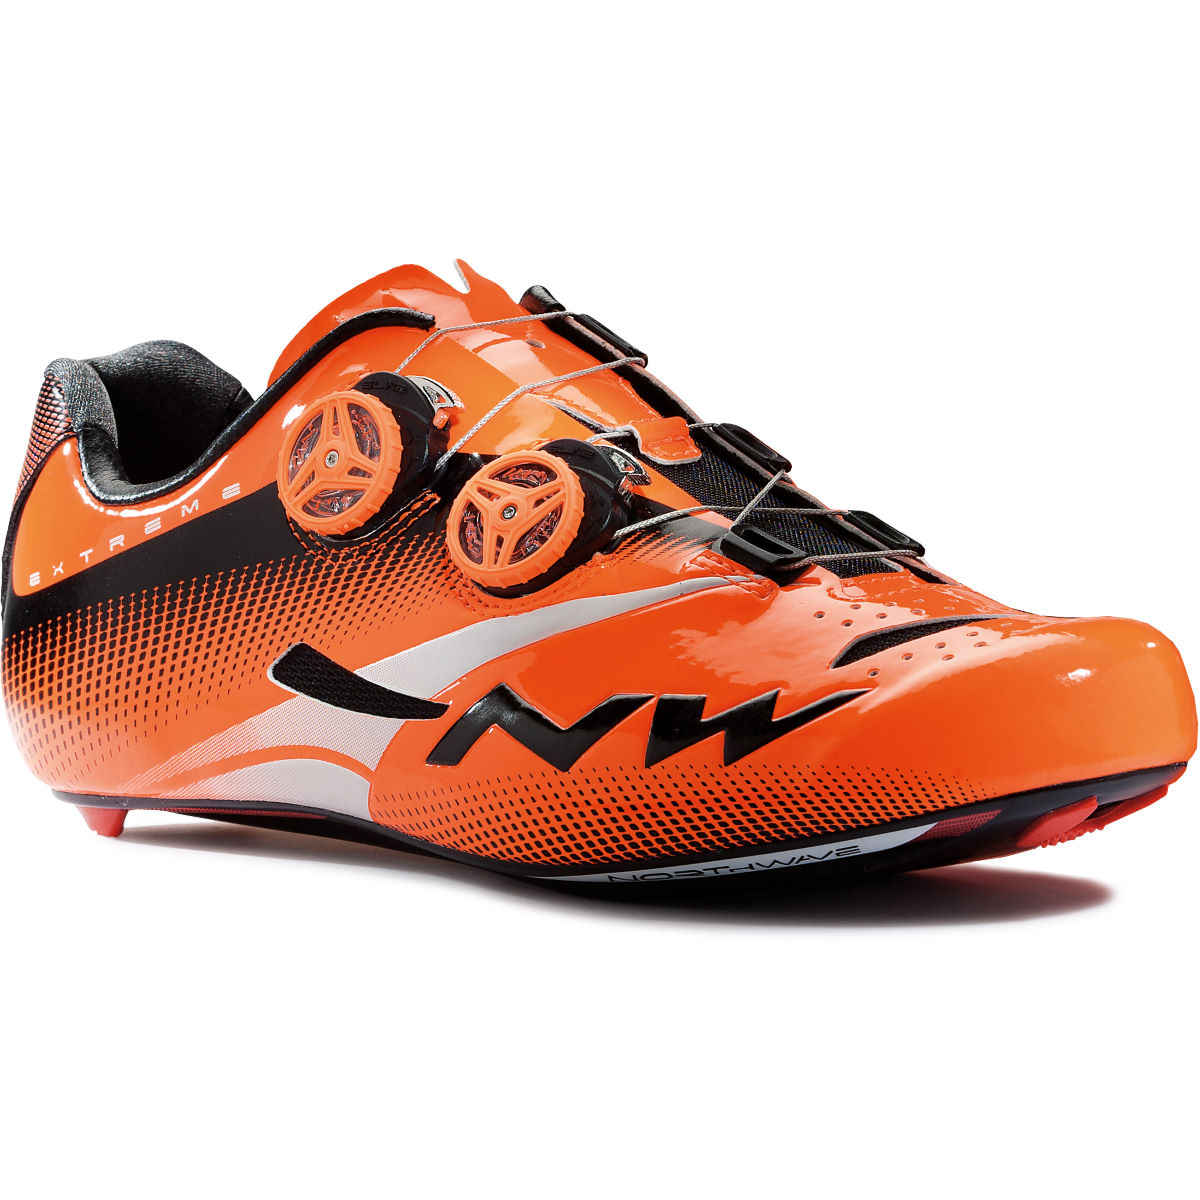 Northwave Extreme Tech Plus Road Shoe